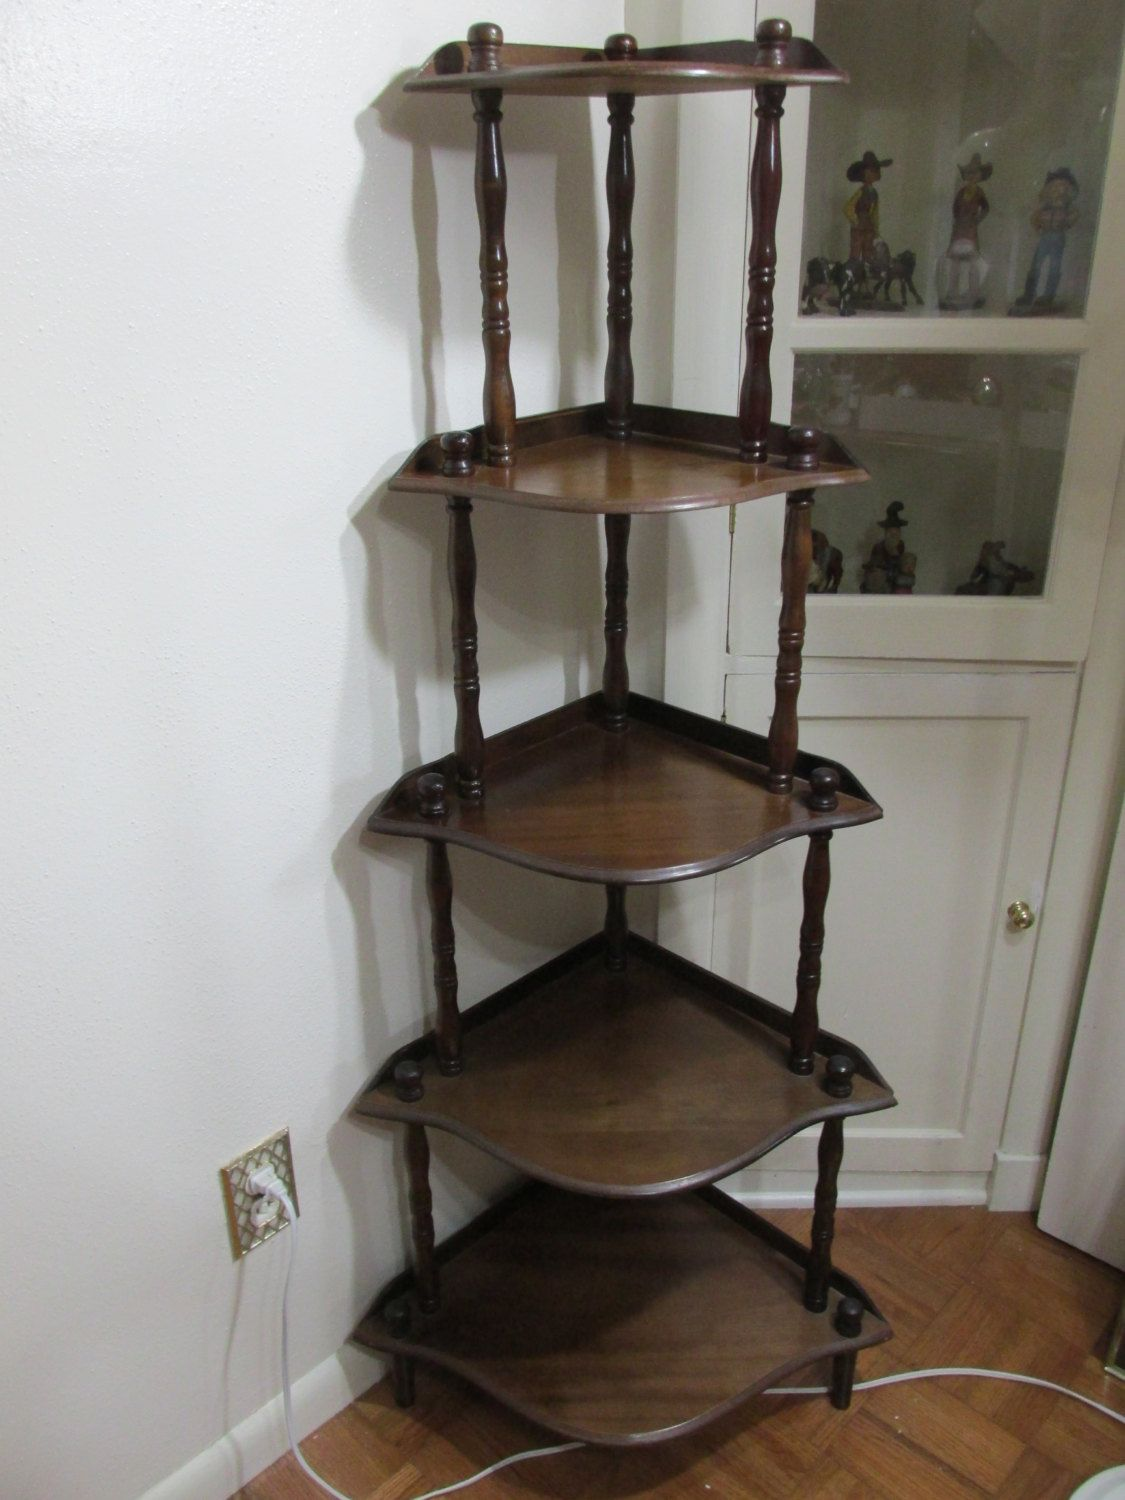 Corner Shelf Vintage Wood 5 Tier Stand Assemble Required By Luruuniques On Etsy Corner Shelves Tiered Stand Shelves